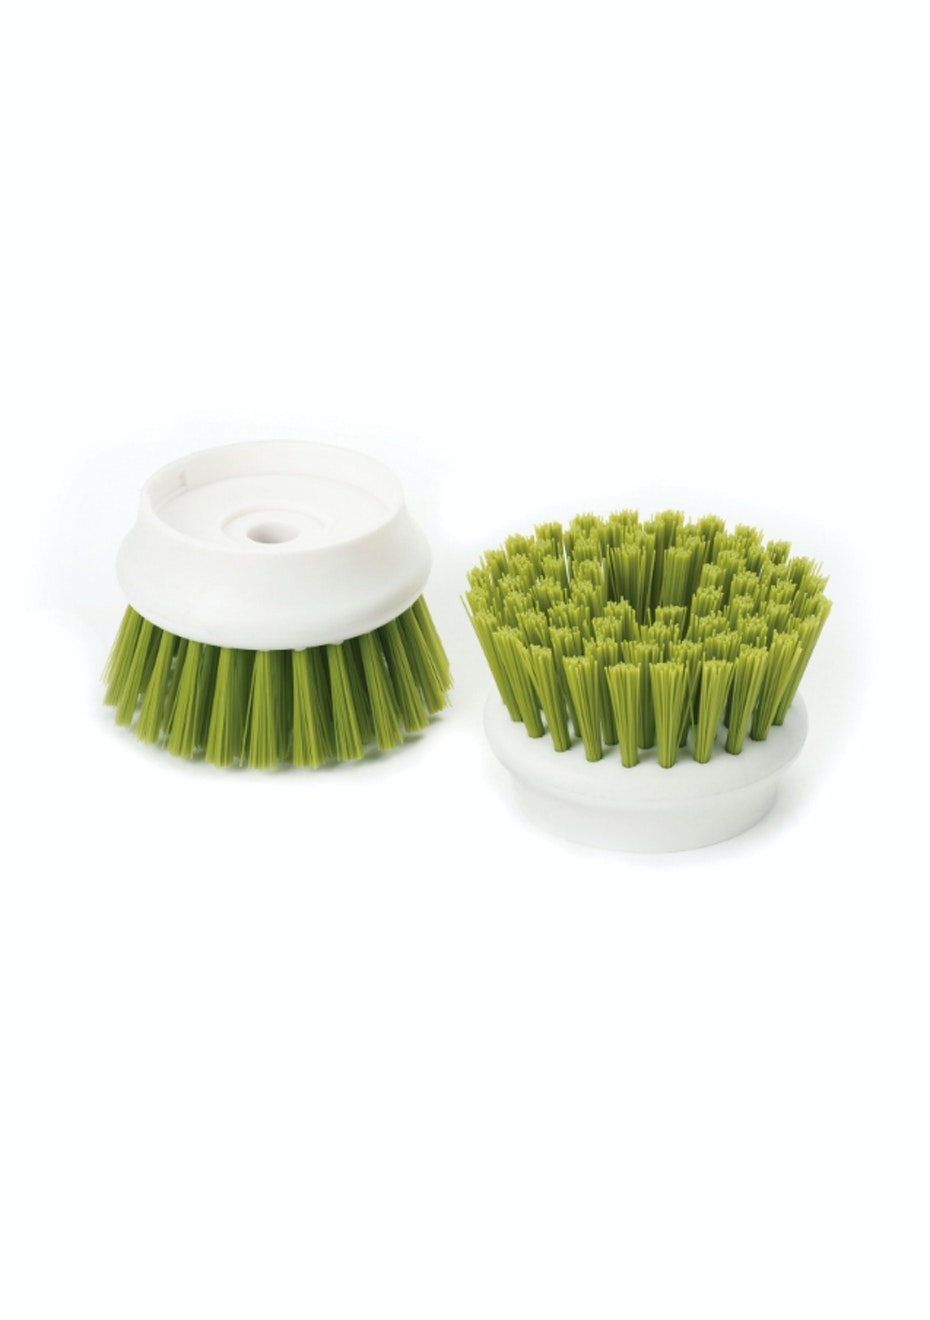 Joseph Joseph - Palm Scrub Brush Head - 2 Pack